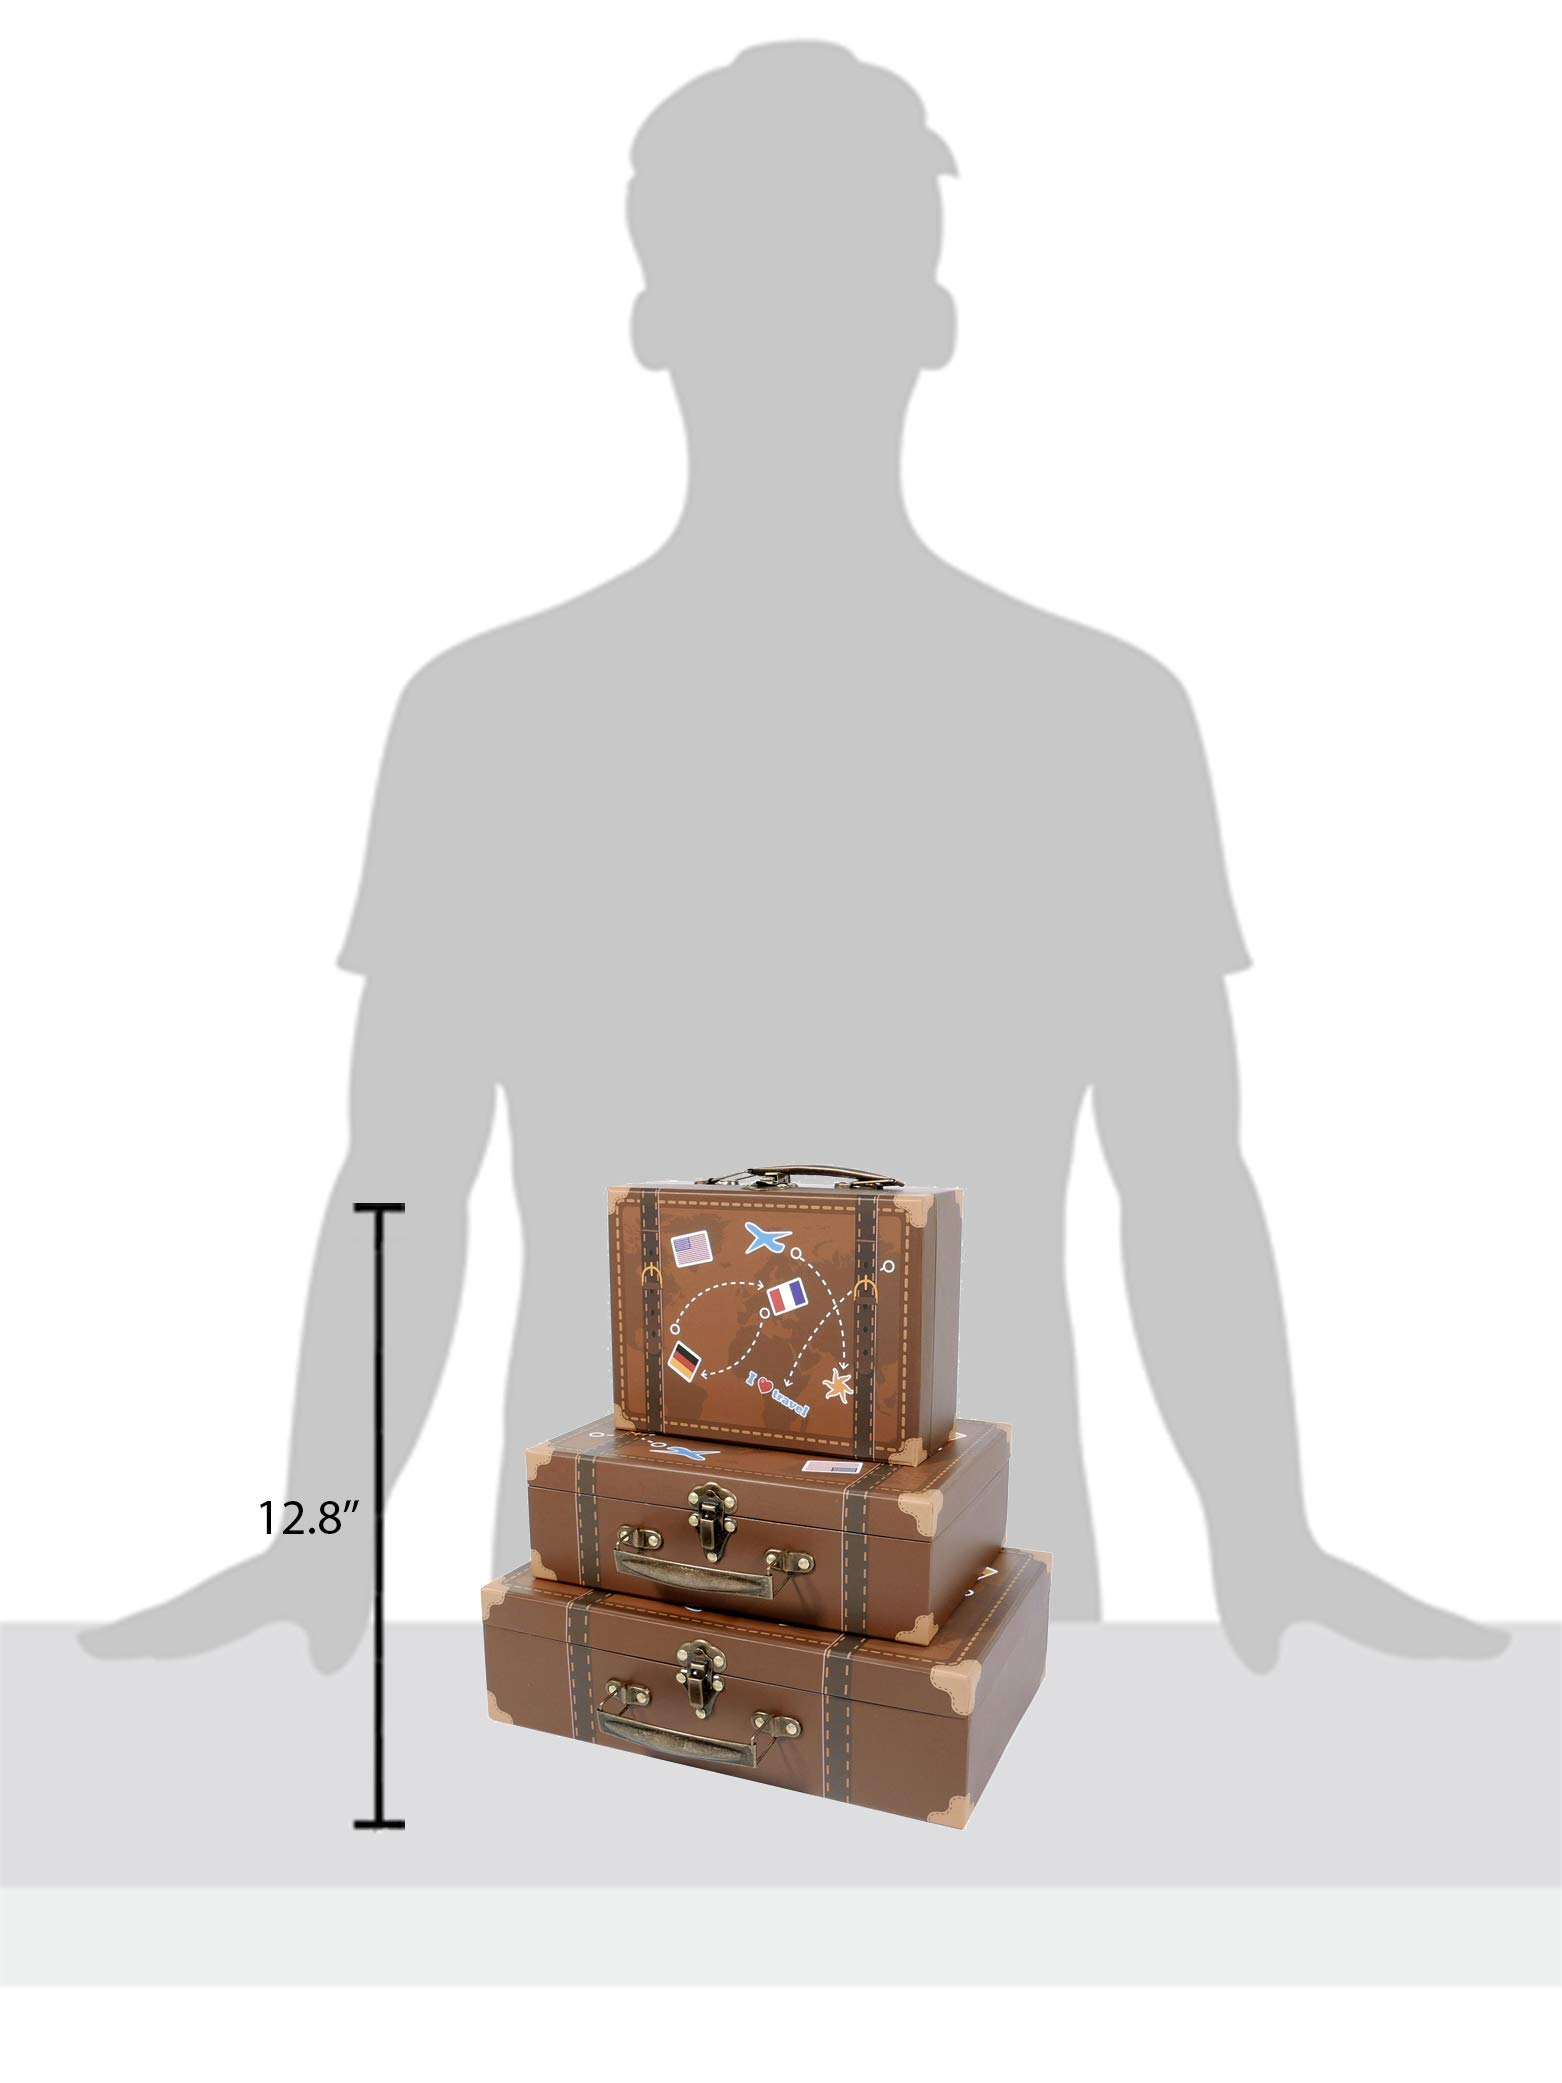 SLPR Paperboard Suitcases (Set of 3, Travel) | Decorative Boxes for Birthday Parties Wedding Decoration Displays Crafts Photo Shoots by SLPR (Image #5)